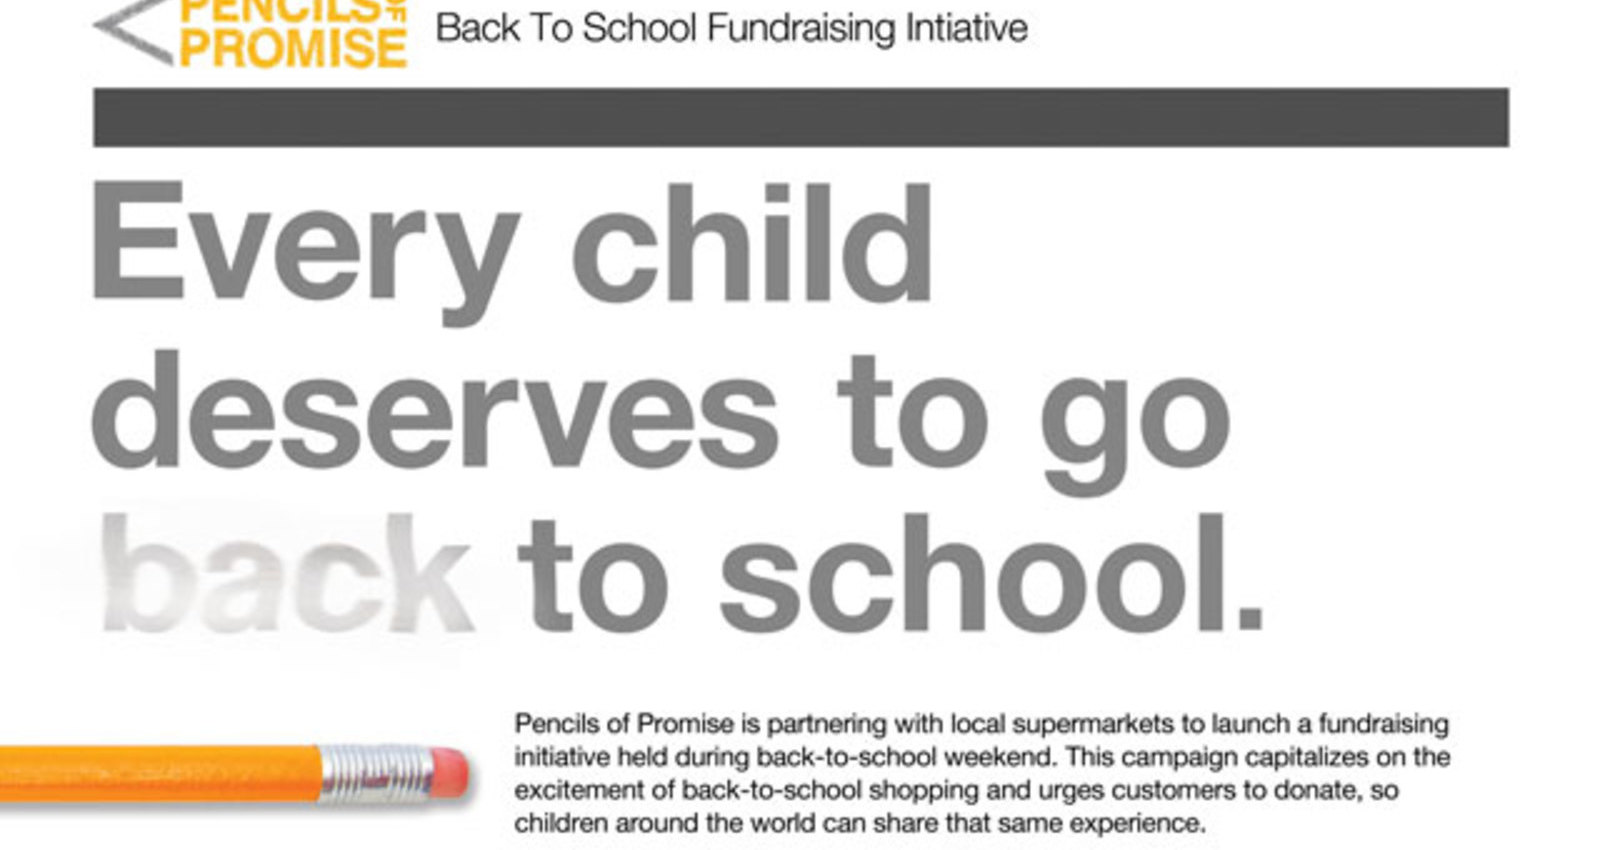 Back-To-School Fundraising Initiative